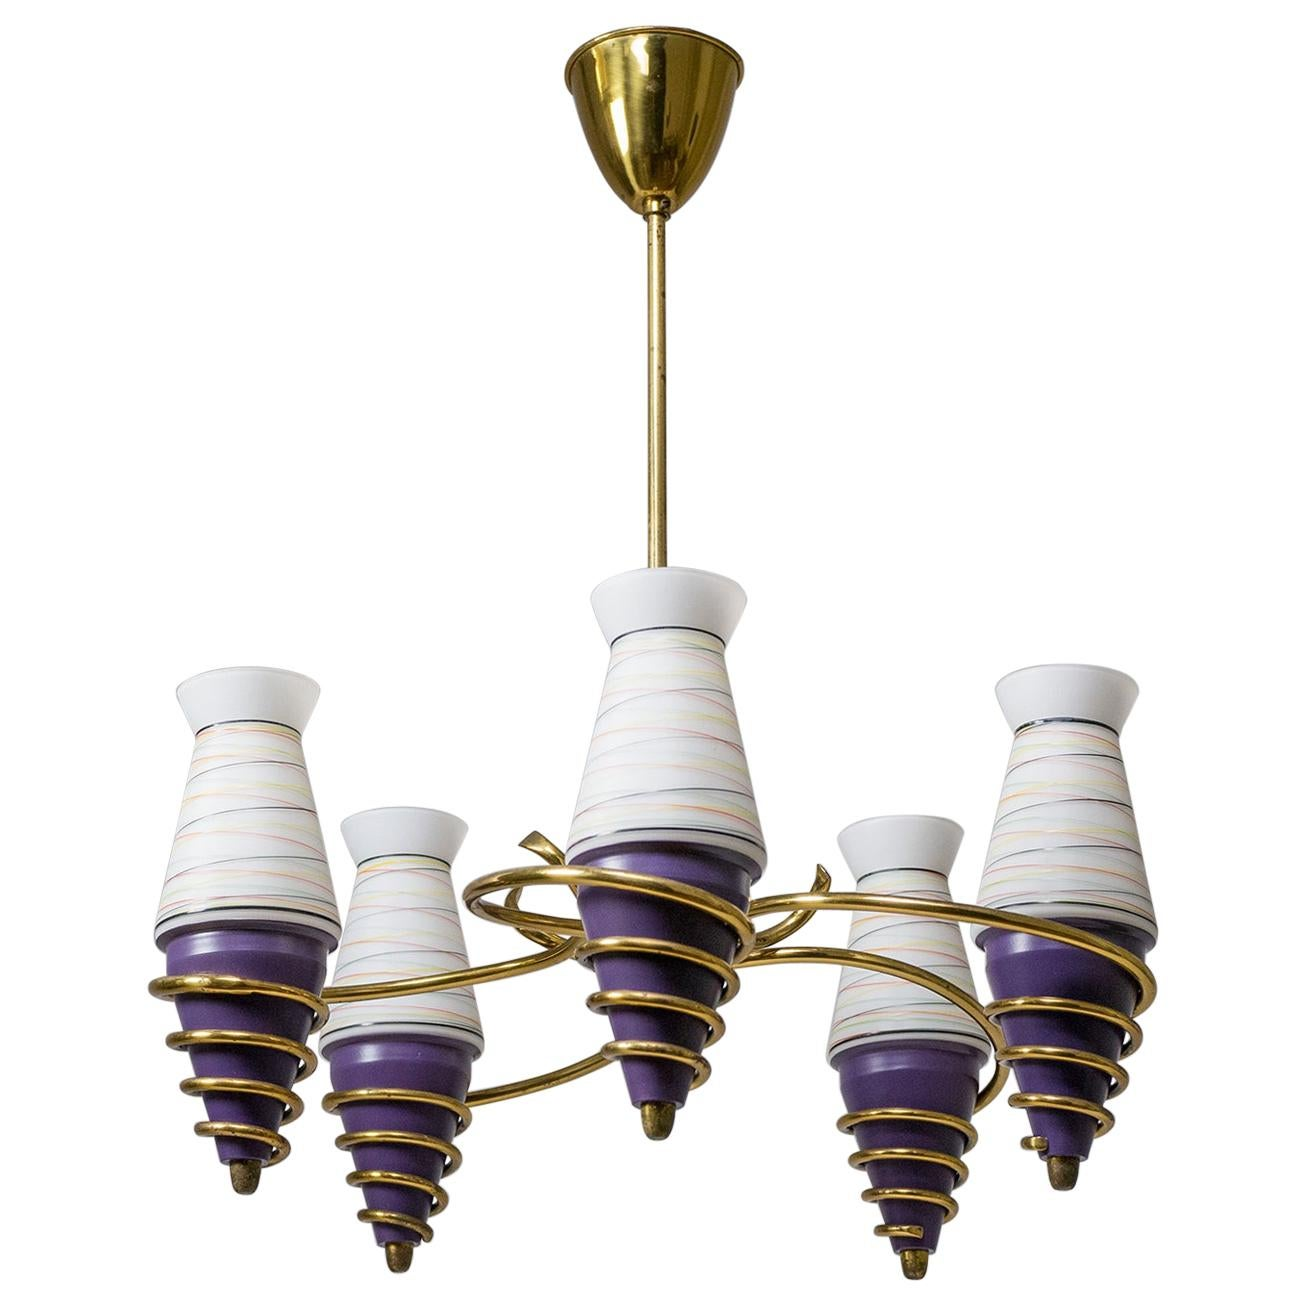 Swedish Brass and Enameled Glass Chandelier, 1940s